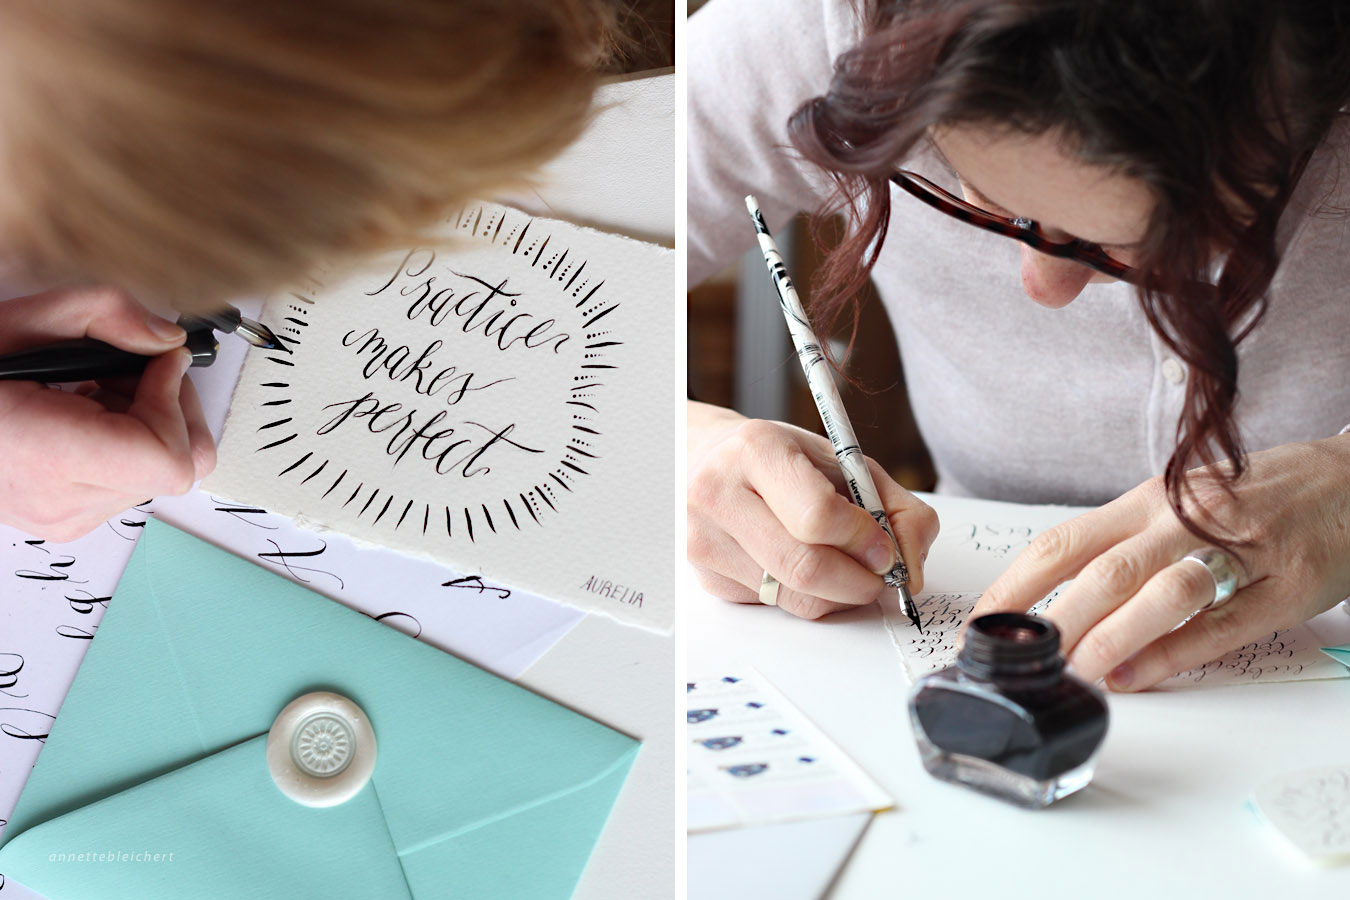 Moderne Kalligrafie Workshop